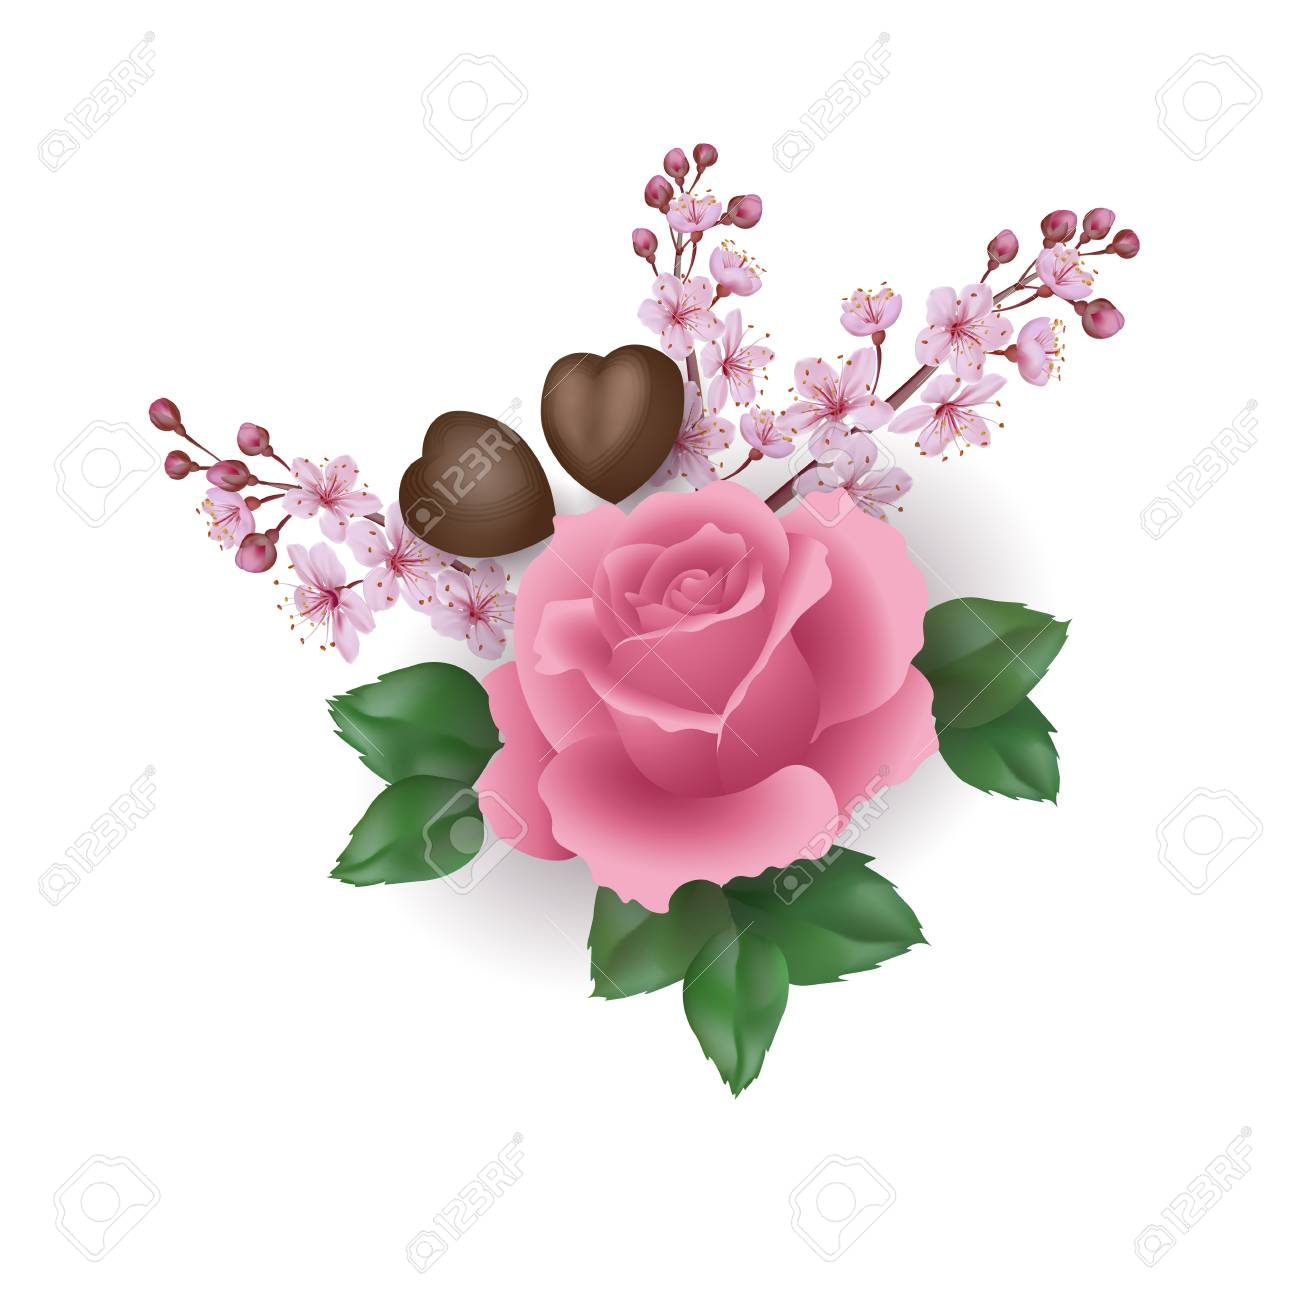 Realistic Valentine Day 3d Set Rose Flower Chocolate Sakura Blossom Royalty Free Cliparts Vectors And Stock Illustration Image 91670950